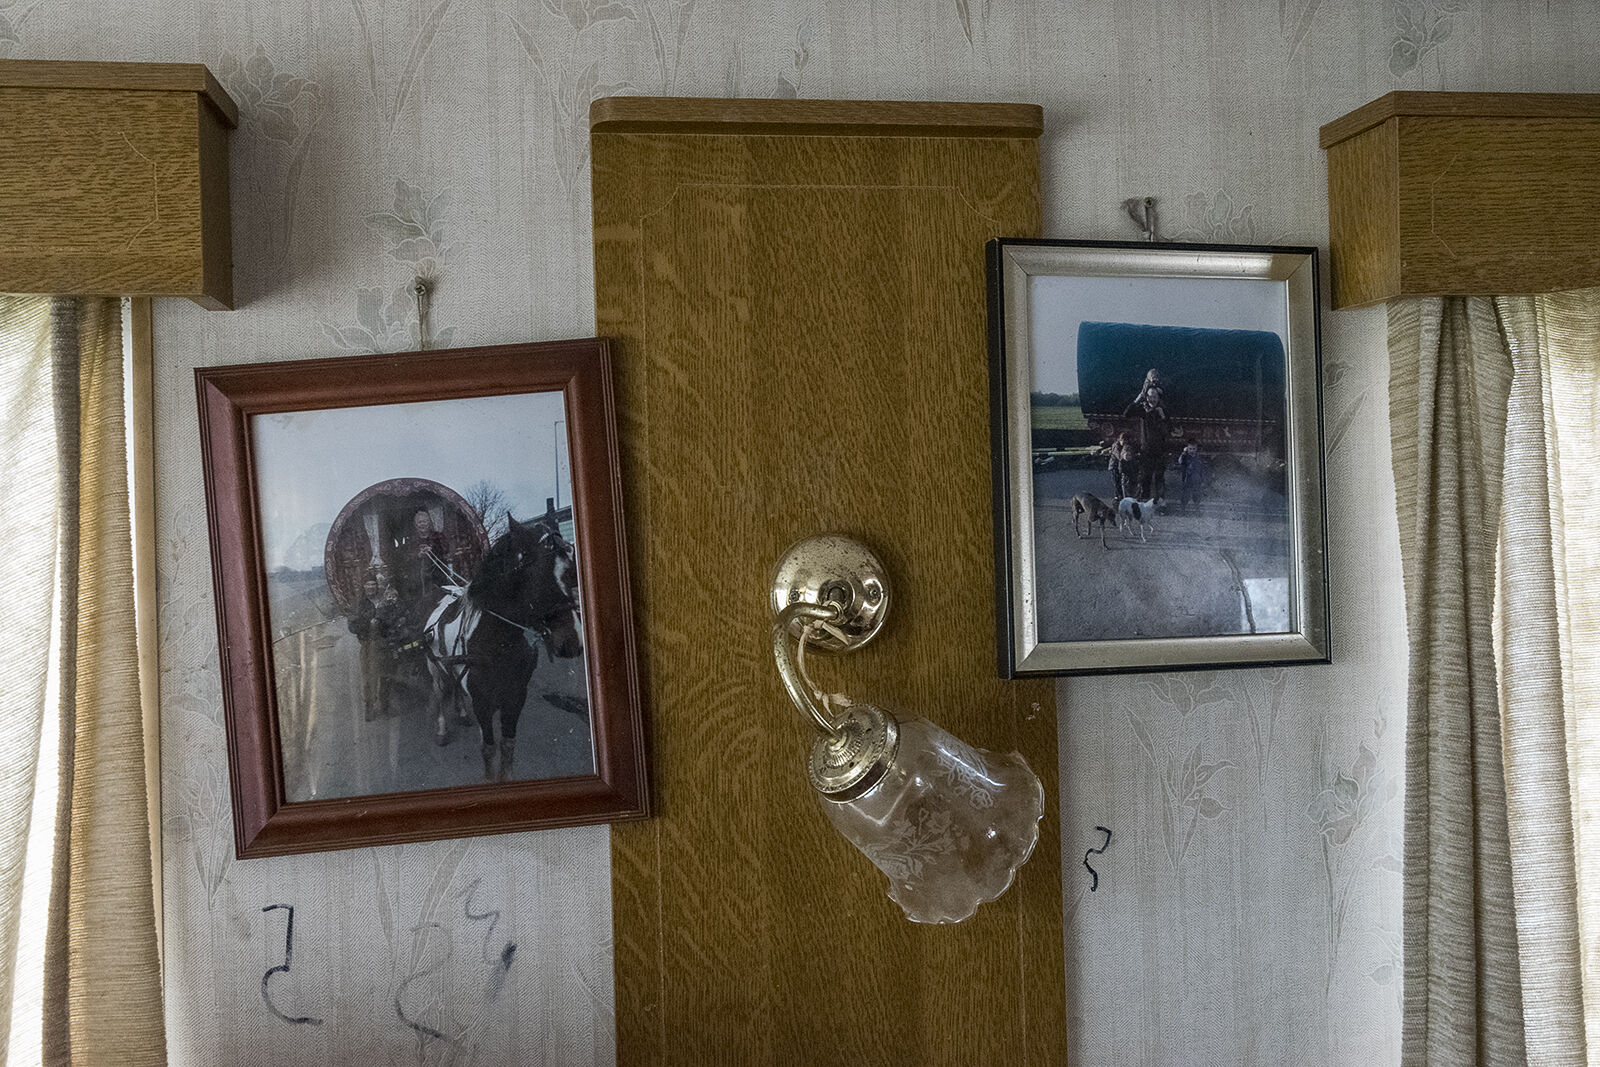 Old Photographs and Lamp, Johnny Reilly Family's Caravan, Tipperary, Ireland 2019